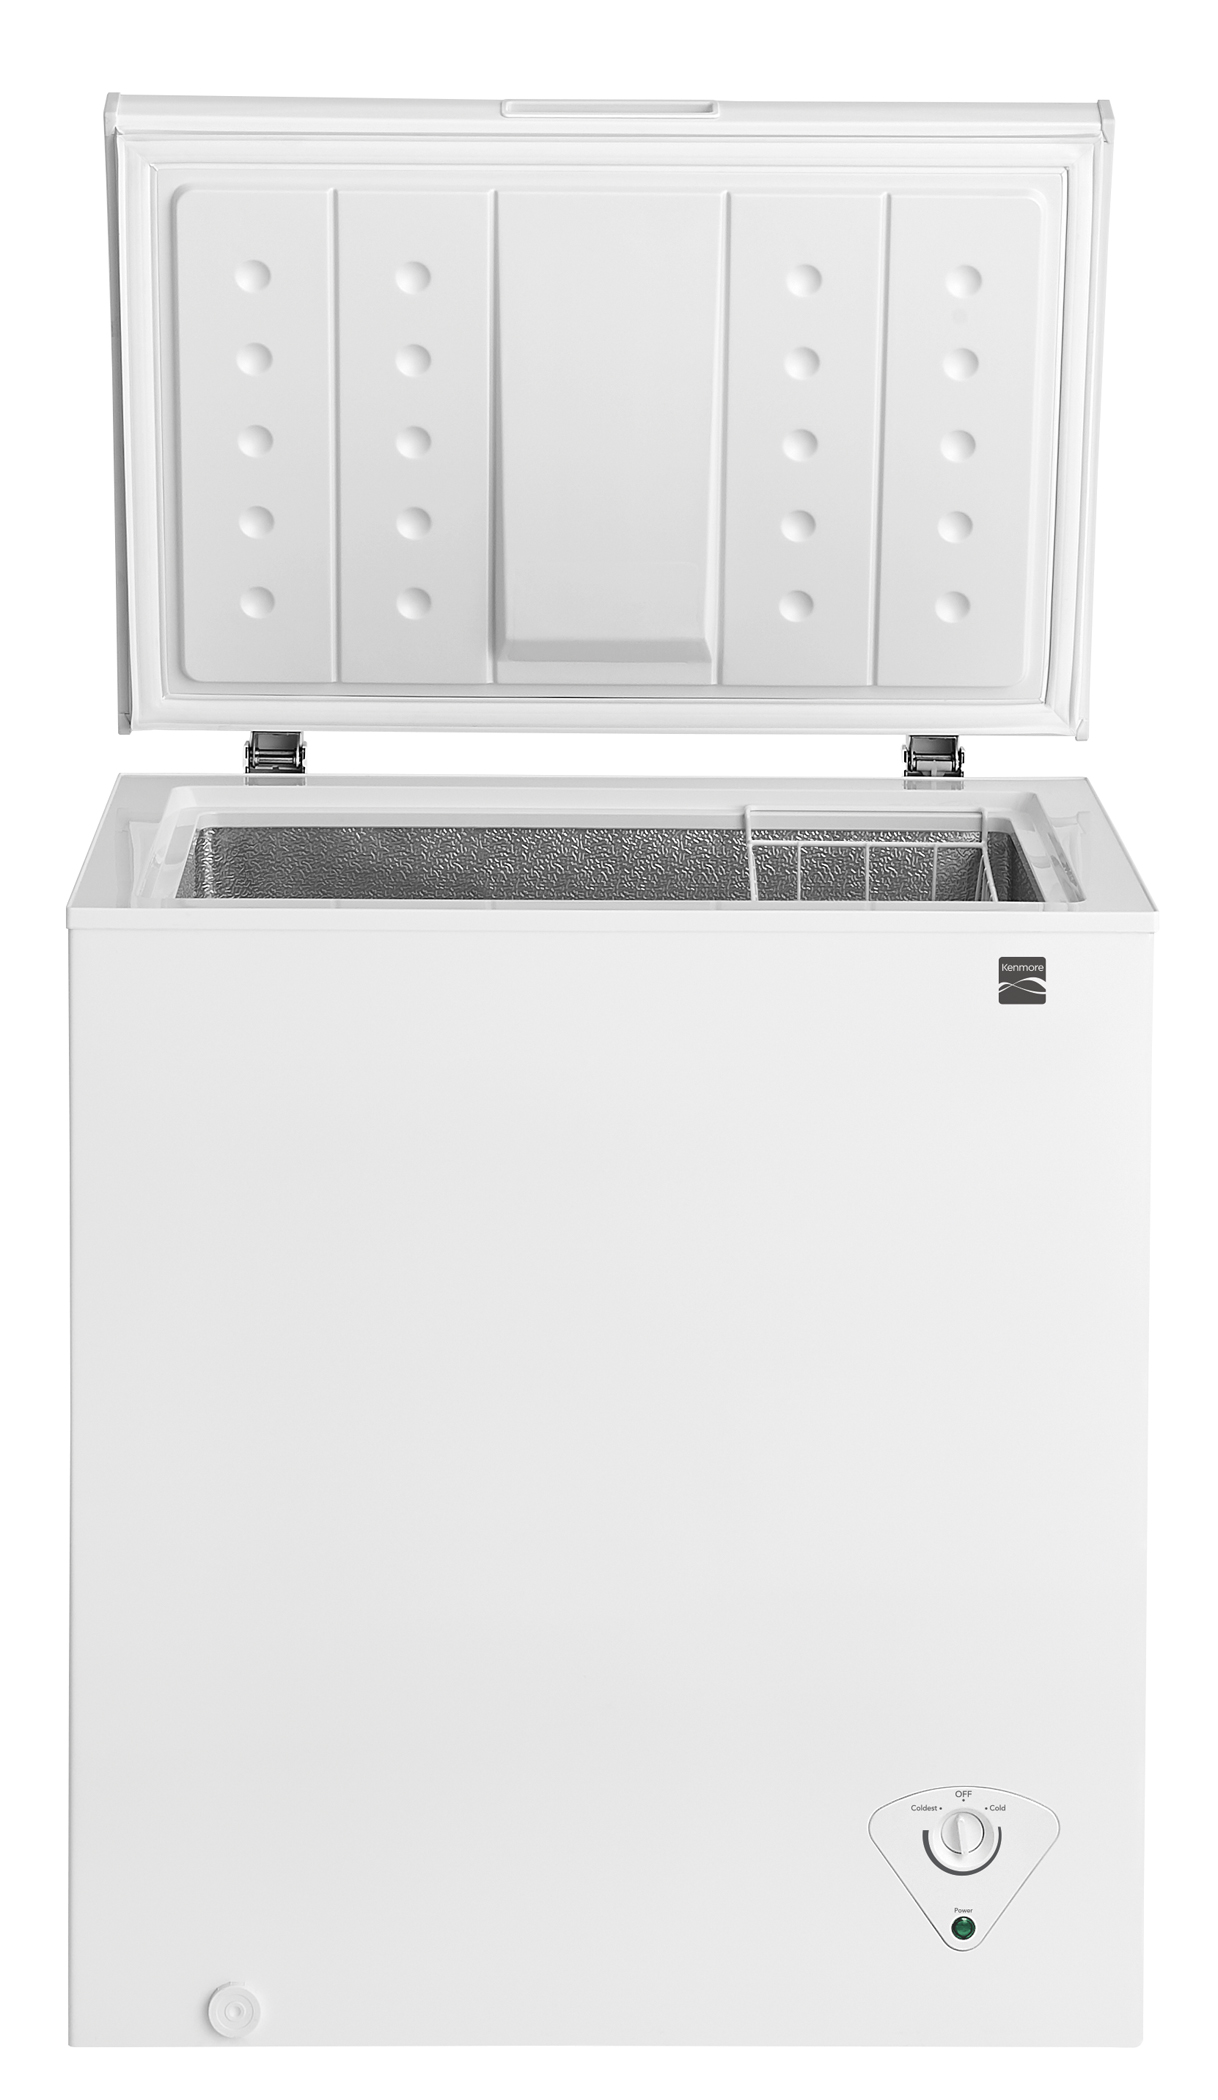 hight resolution of kenmore 17502 5 0 cu ft chest freezer white